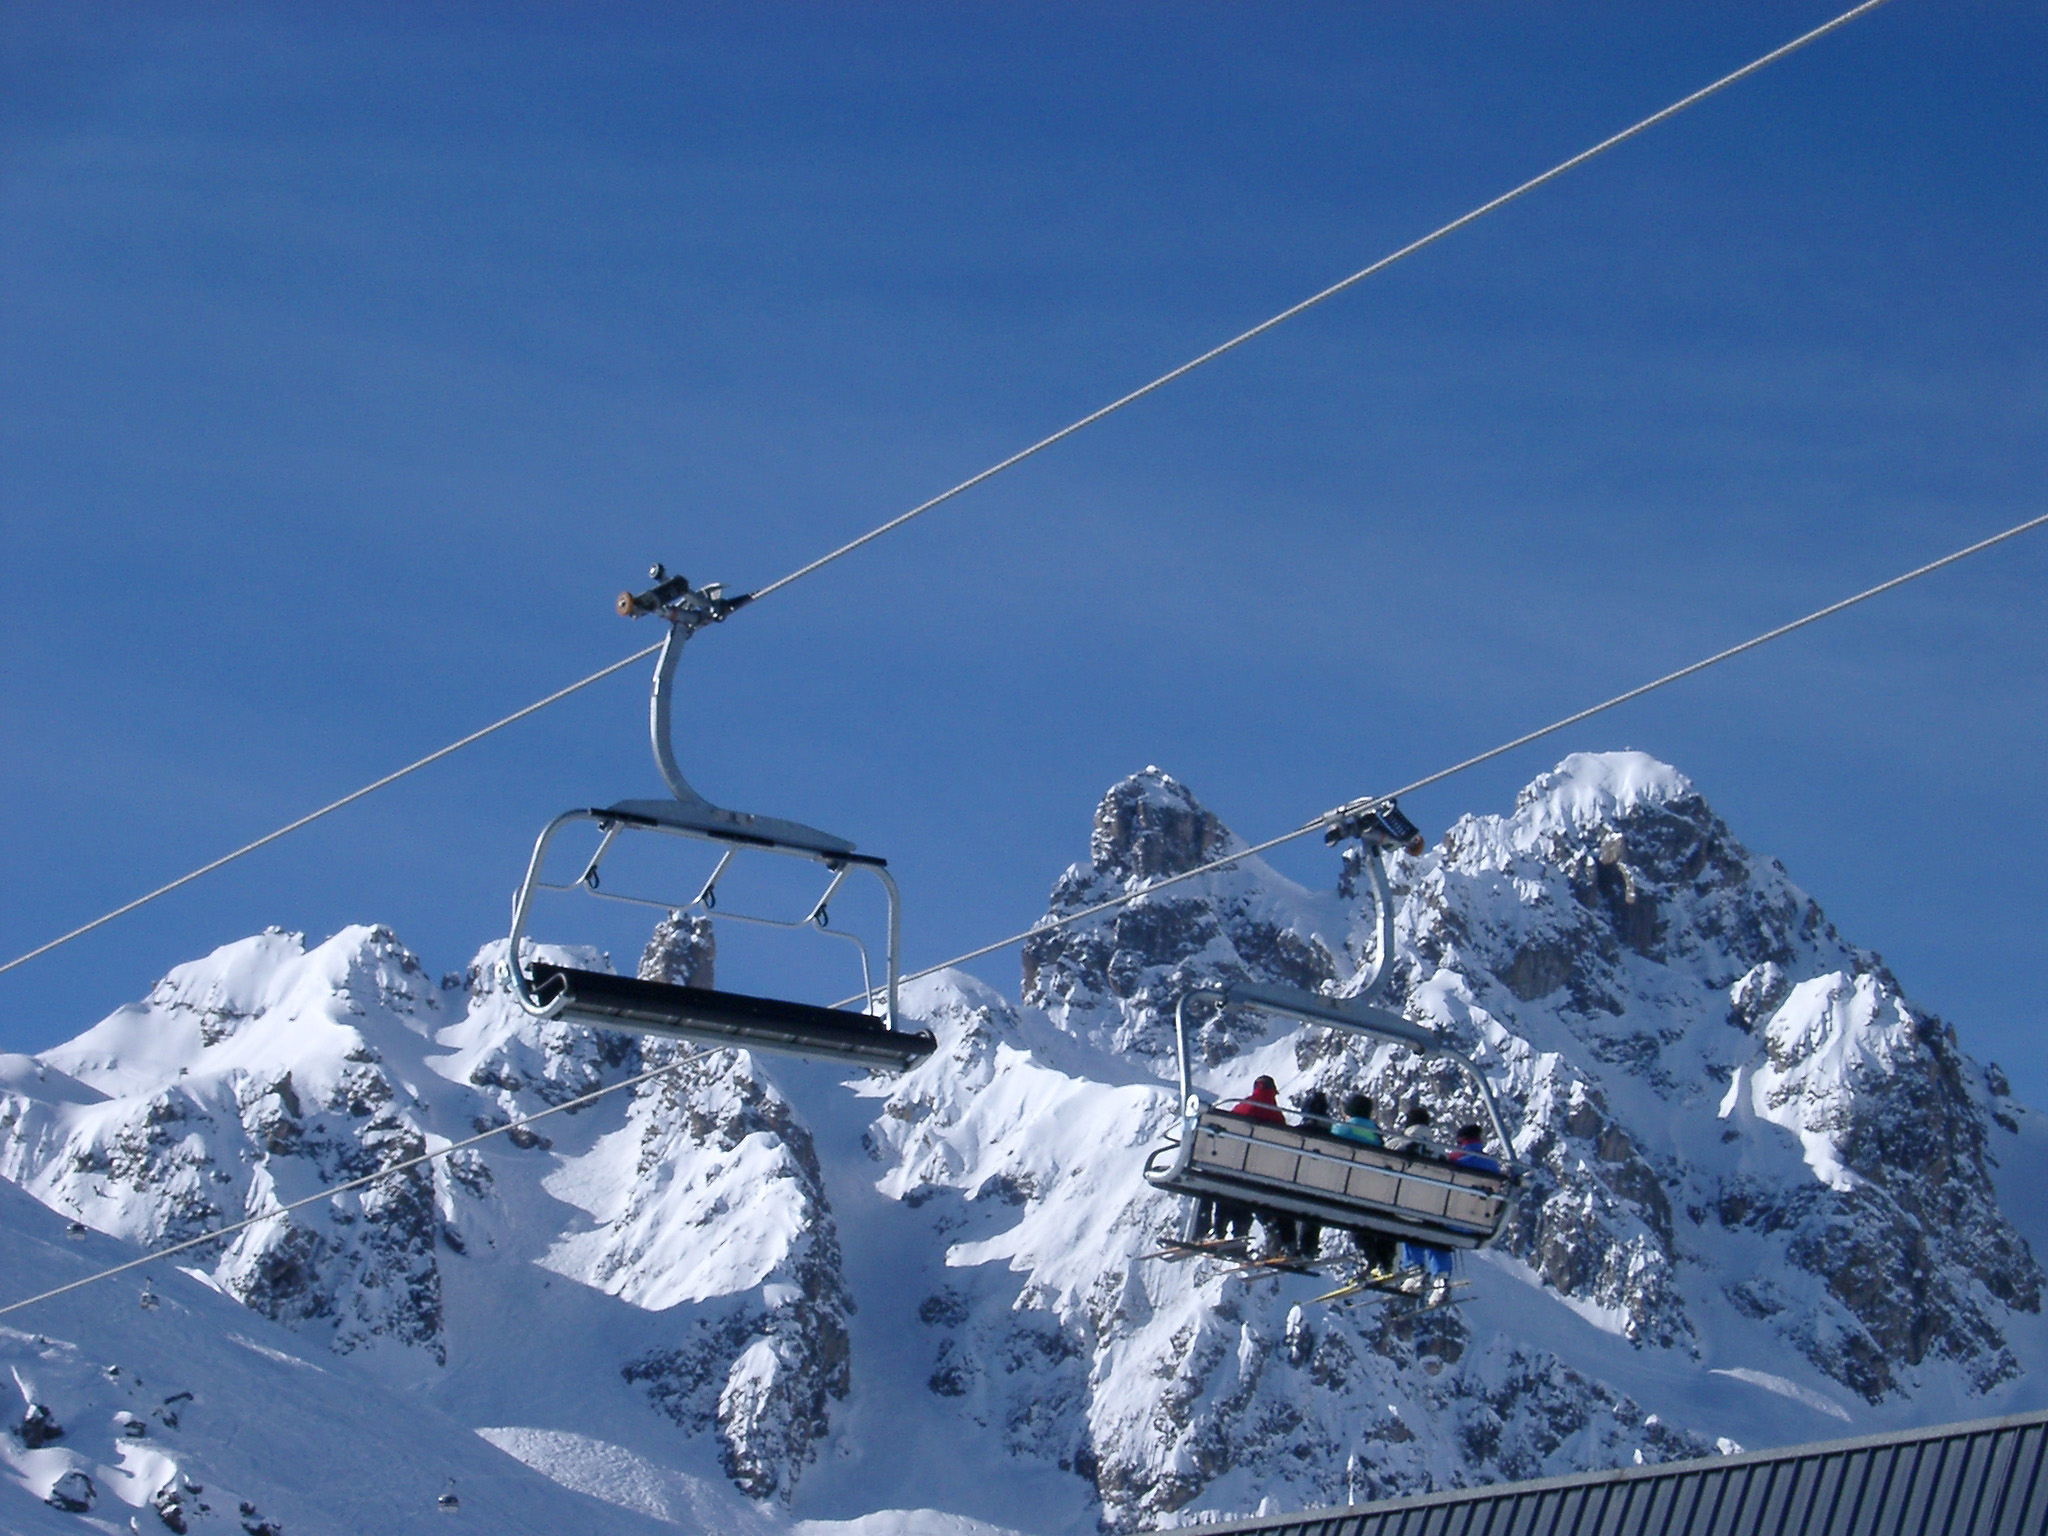 Tourists Riding High Cable Car on a Snow Mountain on Light Blue Sky Background.